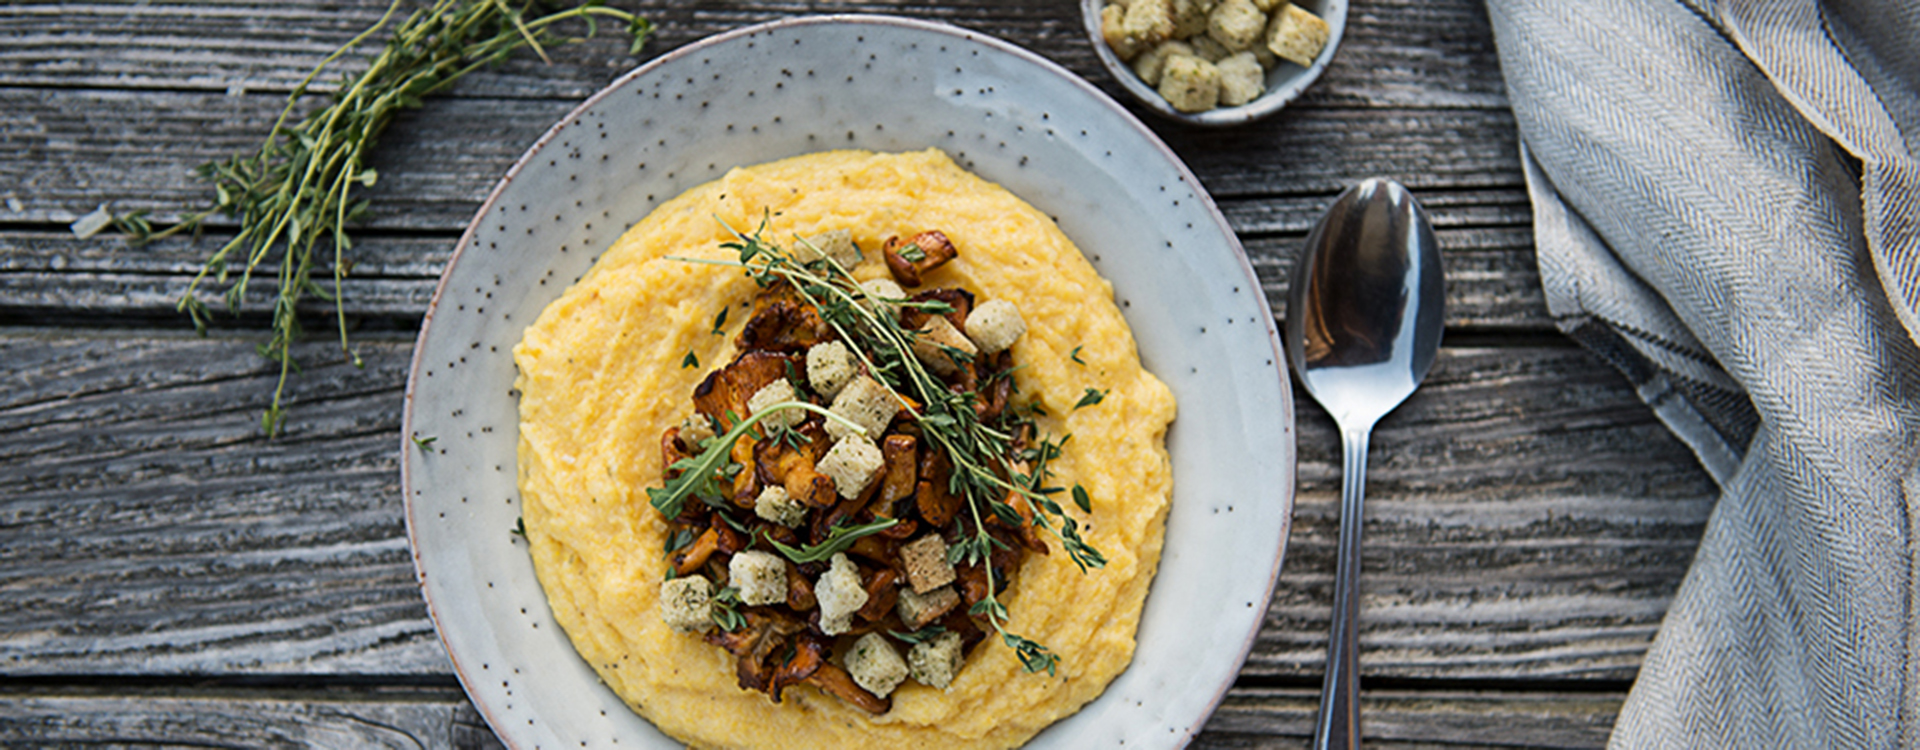 Creamy polenta with mushrooms & croutons